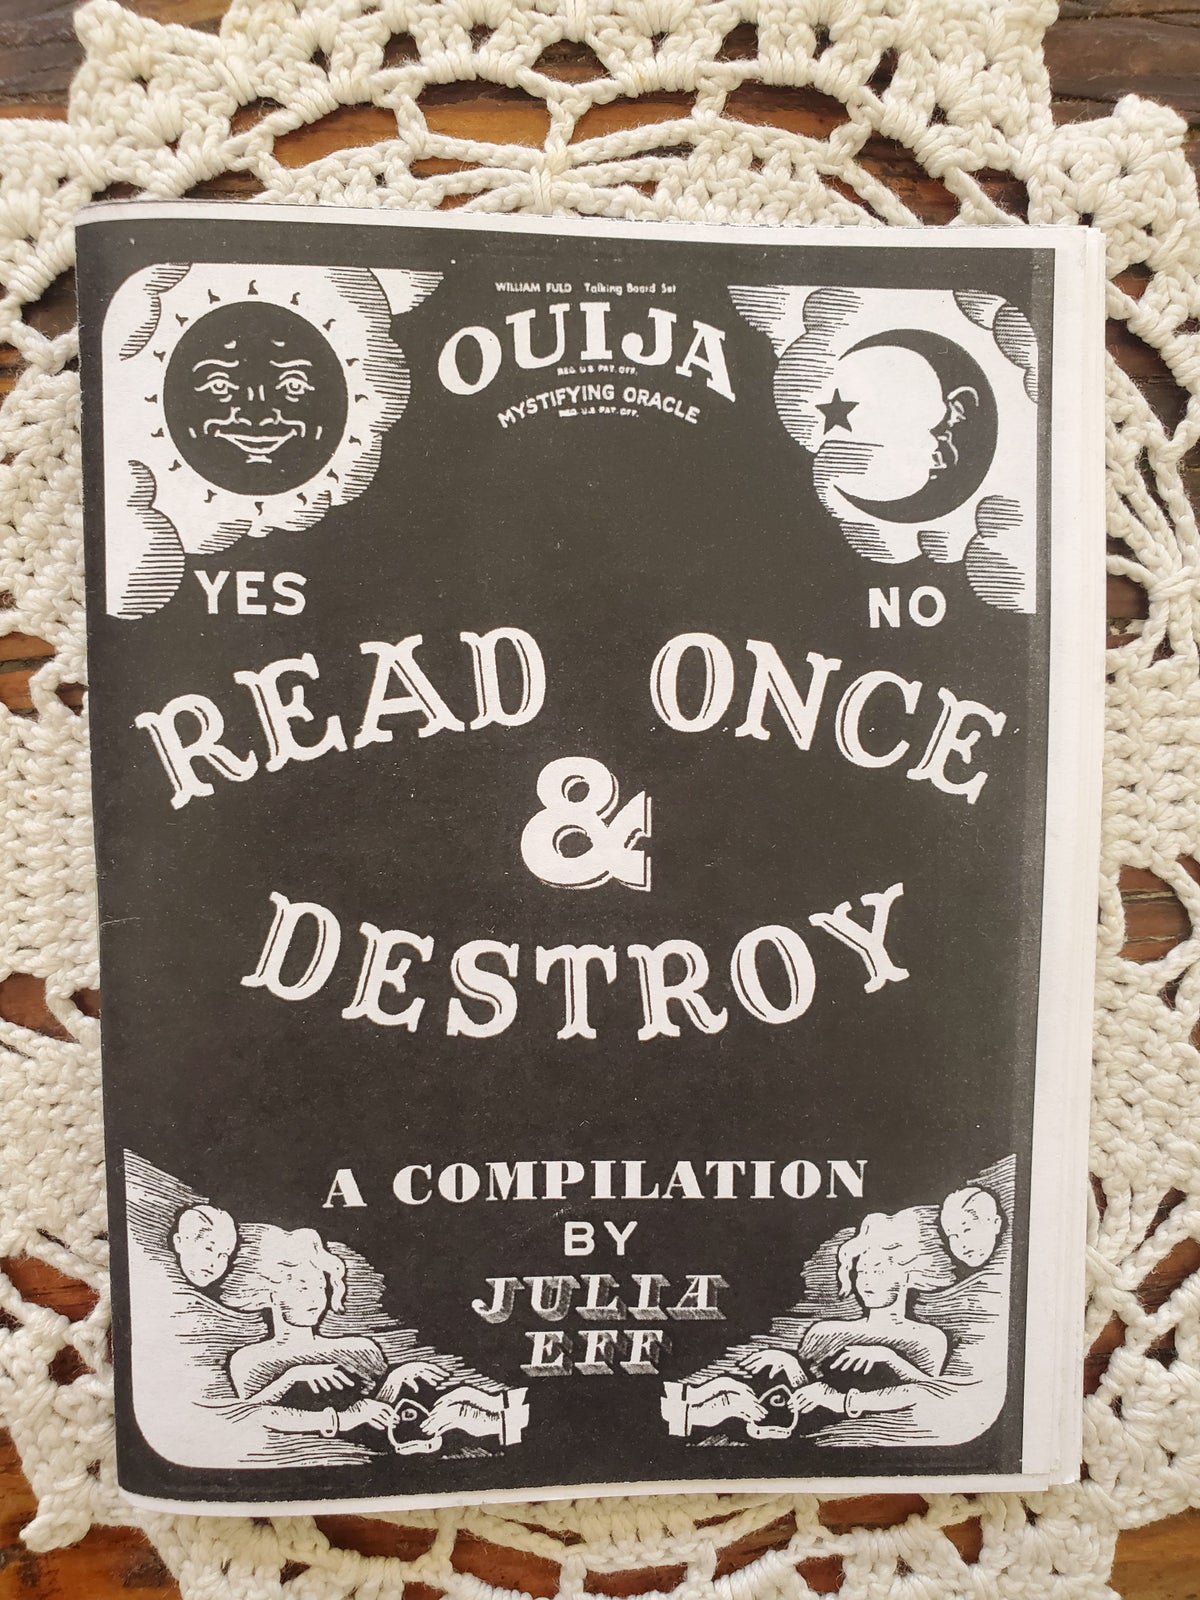 Image of Read Once and Destroy zine by Julia Eff